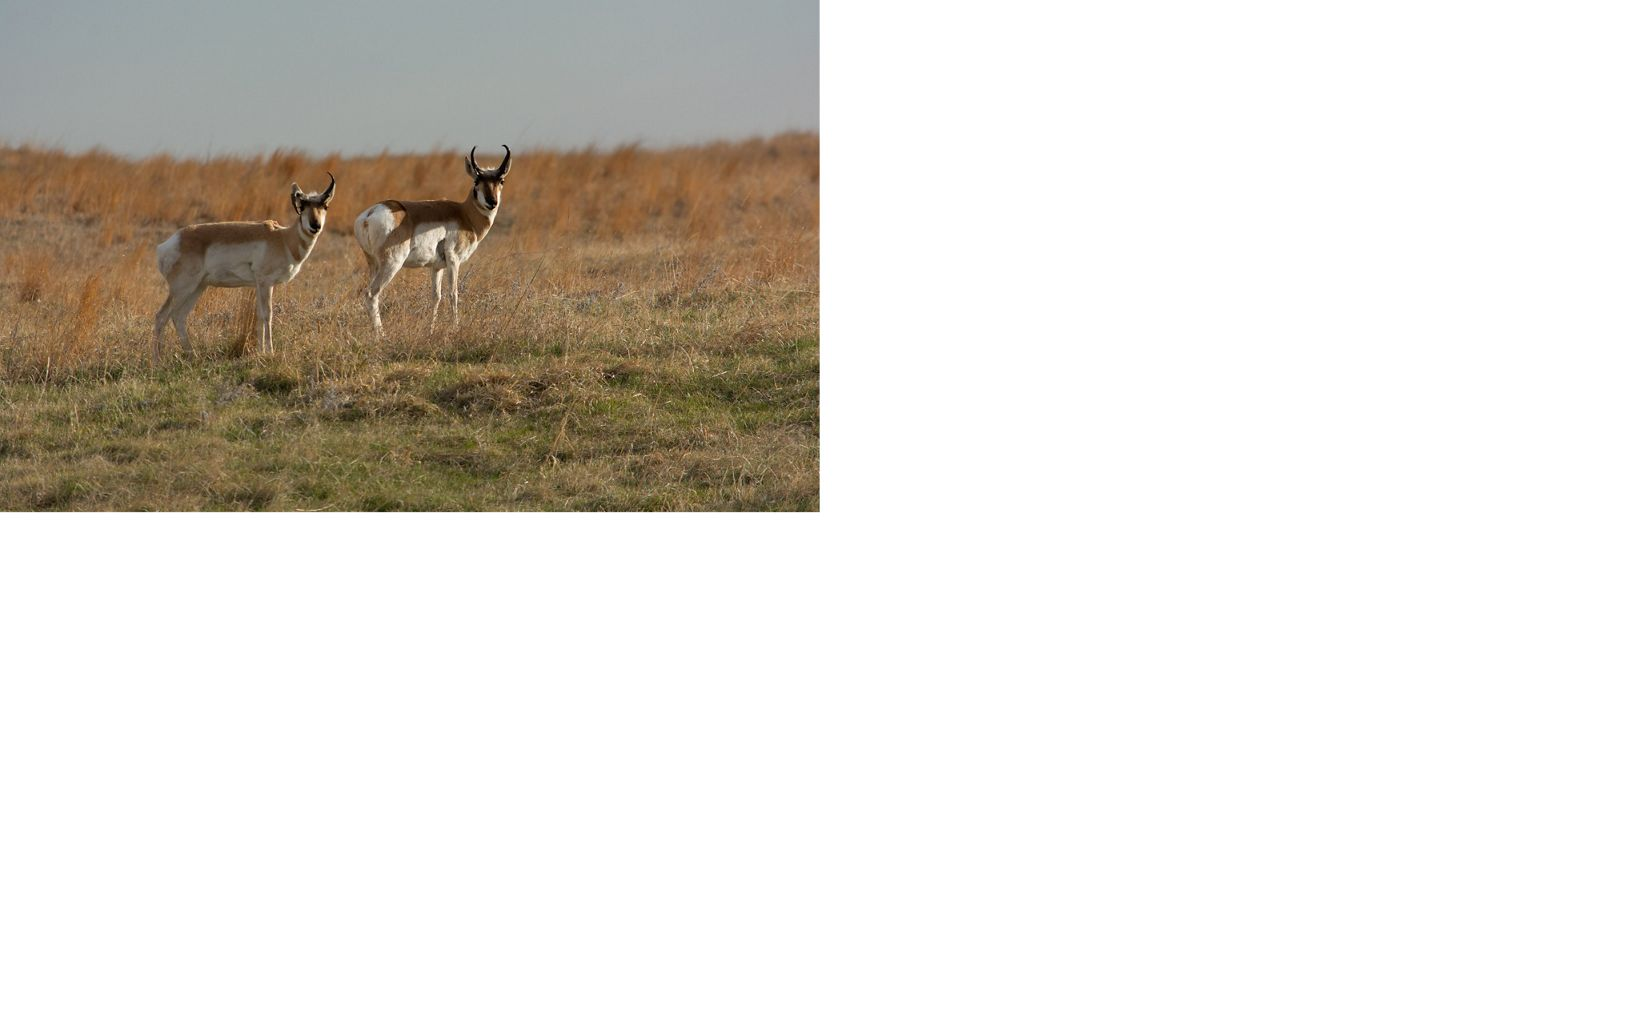 sometimes called antelope, this uniquely North American mammal still plays on the range in western Kansas.